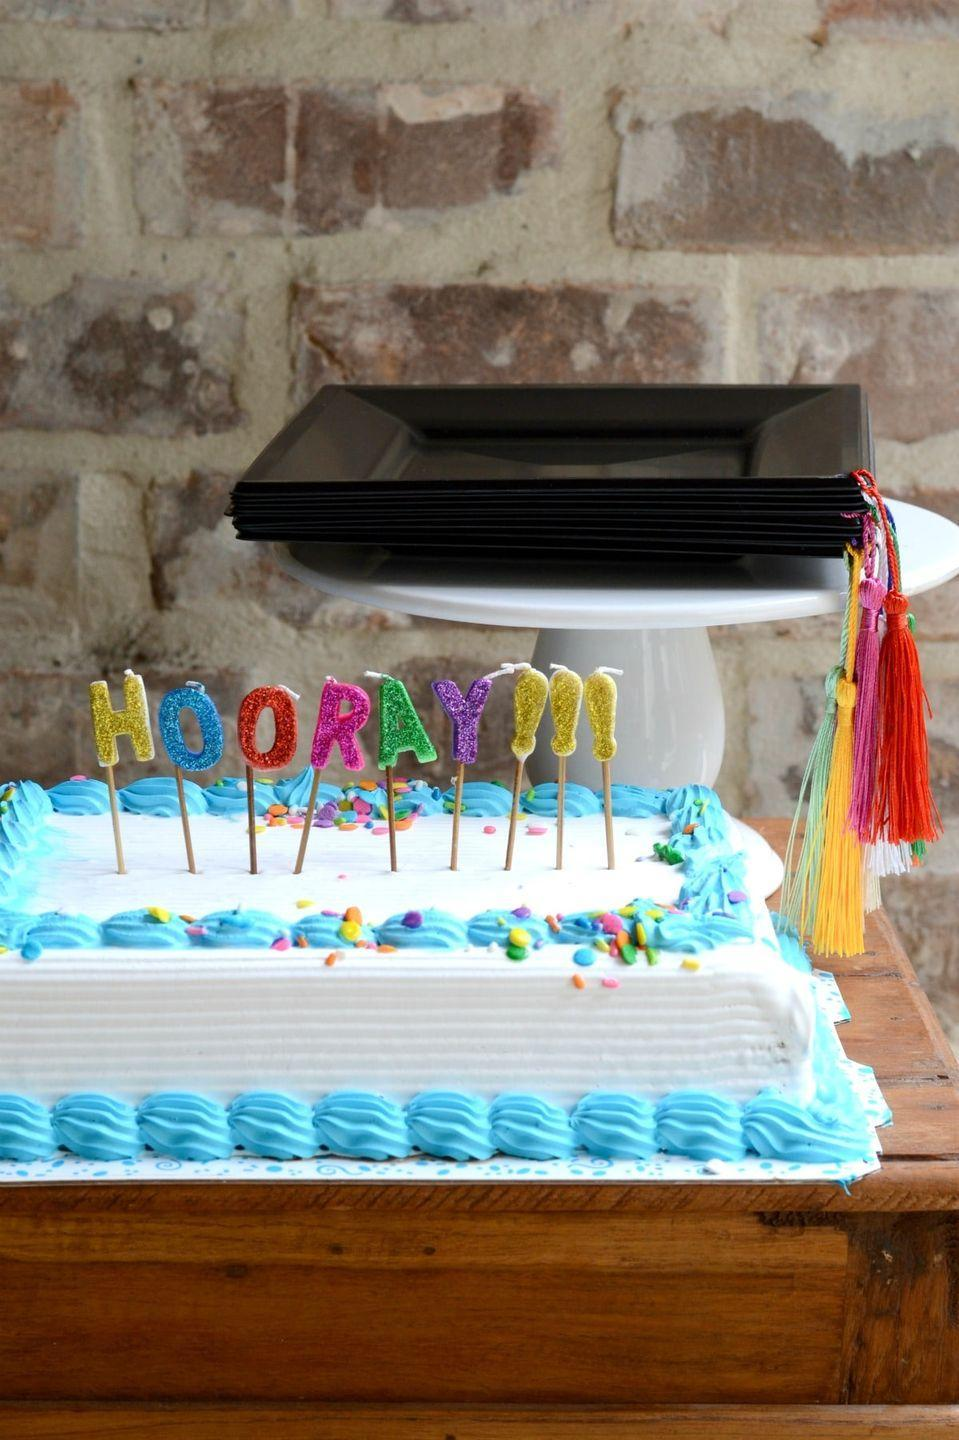 "<p>How's this for a why-didn't-I-think-of-that detail to add to the graduation party? Black paper plates with tassels! They look just like graduation caps. </p><p><strong>Get the tutorial at <a href=""https://www.goodinthesimple.com/diy-graduation-party-plates-with-tassels/"" rel=""nofollow noopener"" target=""_blank"" data-ylk=""slk:Good in the Simple"" class=""link rapid-noclick-resp"">Good in the Simple</a>.</strong></p><p><a class=""link rapid-noclick-resp"" href=""https://go.redirectingat.com?id=74968X1596630&url=https%3A%2F%2Fwww.walmart.com%2Fip%2FSchool-Smart-1-Hole-Paper-Punch-1-4-in-10-Sheets-Nickel-Plated%2F194544550&sref=https%3A%2F%2Fwww.thepioneerwoman.com%2Fhome-lifestyle%2Fentertaining%2Fg36014713%2Fgraduation-party-ideas%2F"" rel=""nofollow noopener"" target=""_blank"" data-ylk=""slk:SHOP HOLE PUNCHES"">SHOP HOLE PUNCHES</a></p>"